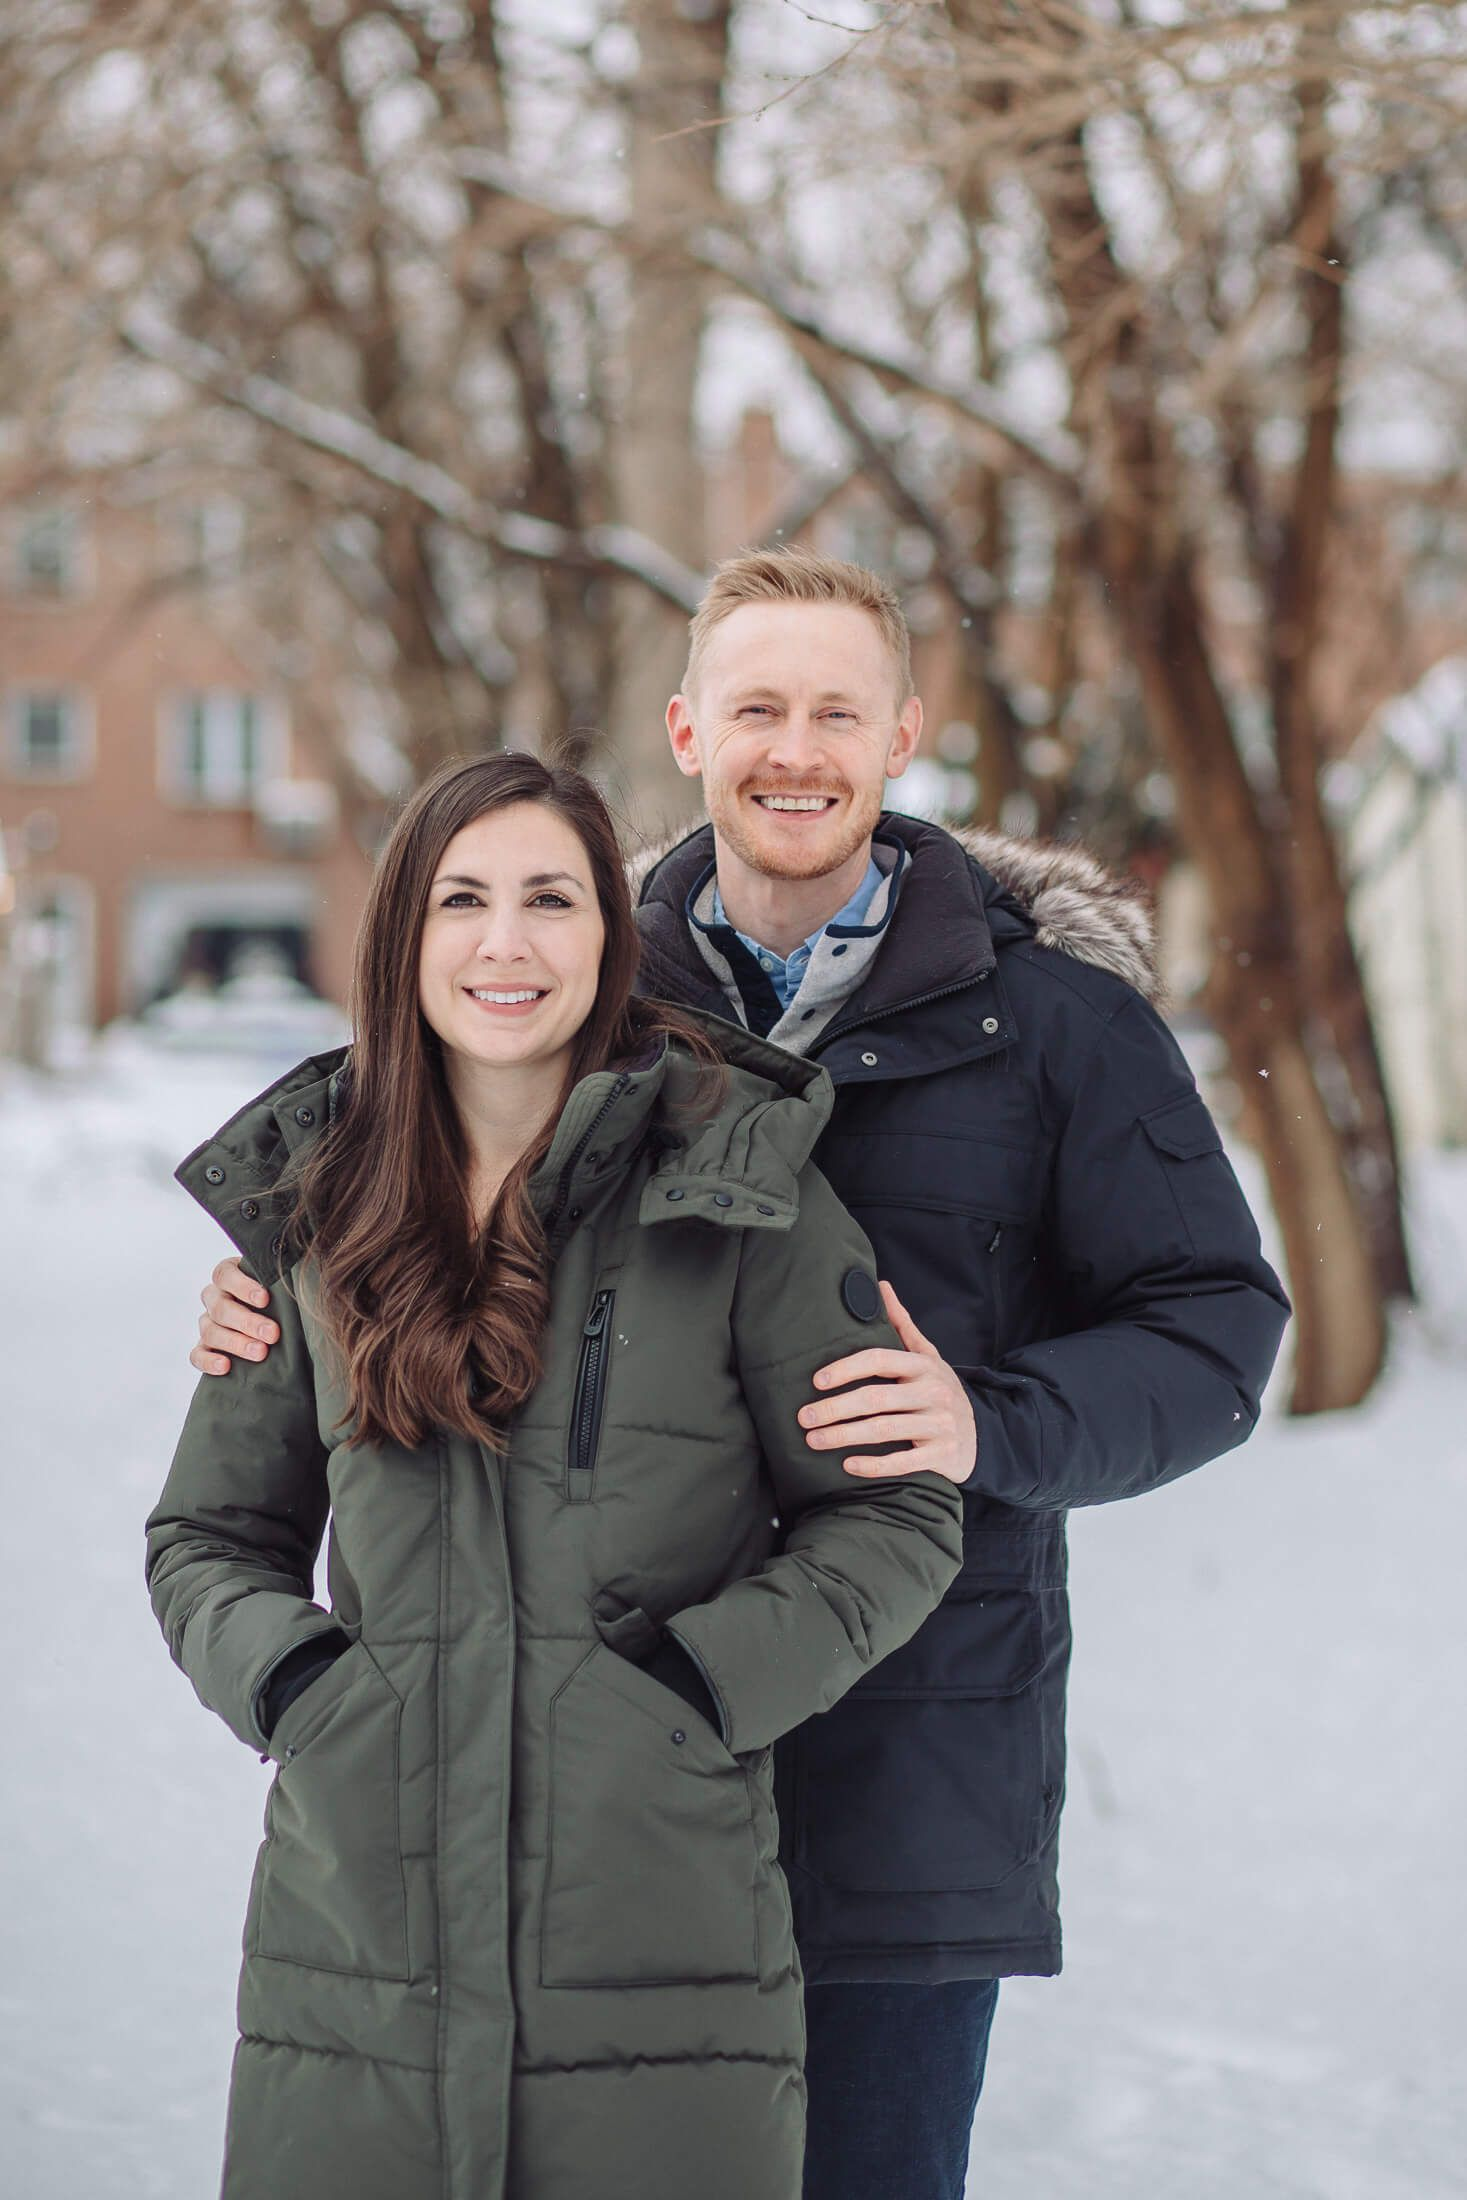 Cherry Hill engagement photography session in the snow.